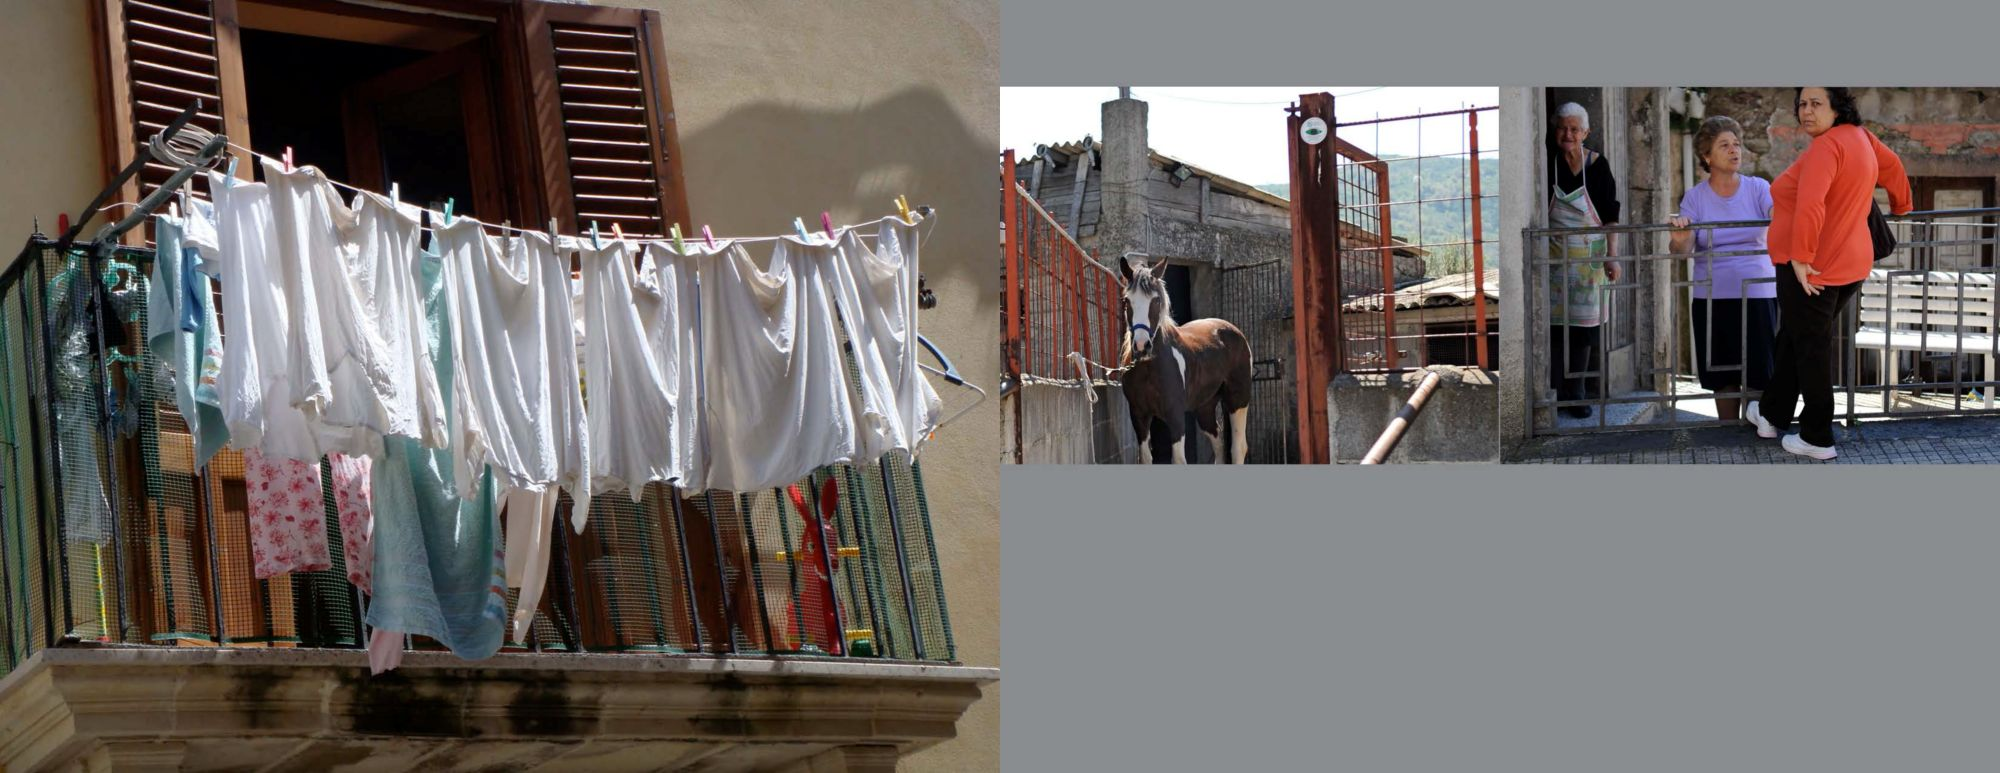 Sicily Album - Page 18: Drying clothes on the balcony / Page 19: Neighbors gossiping